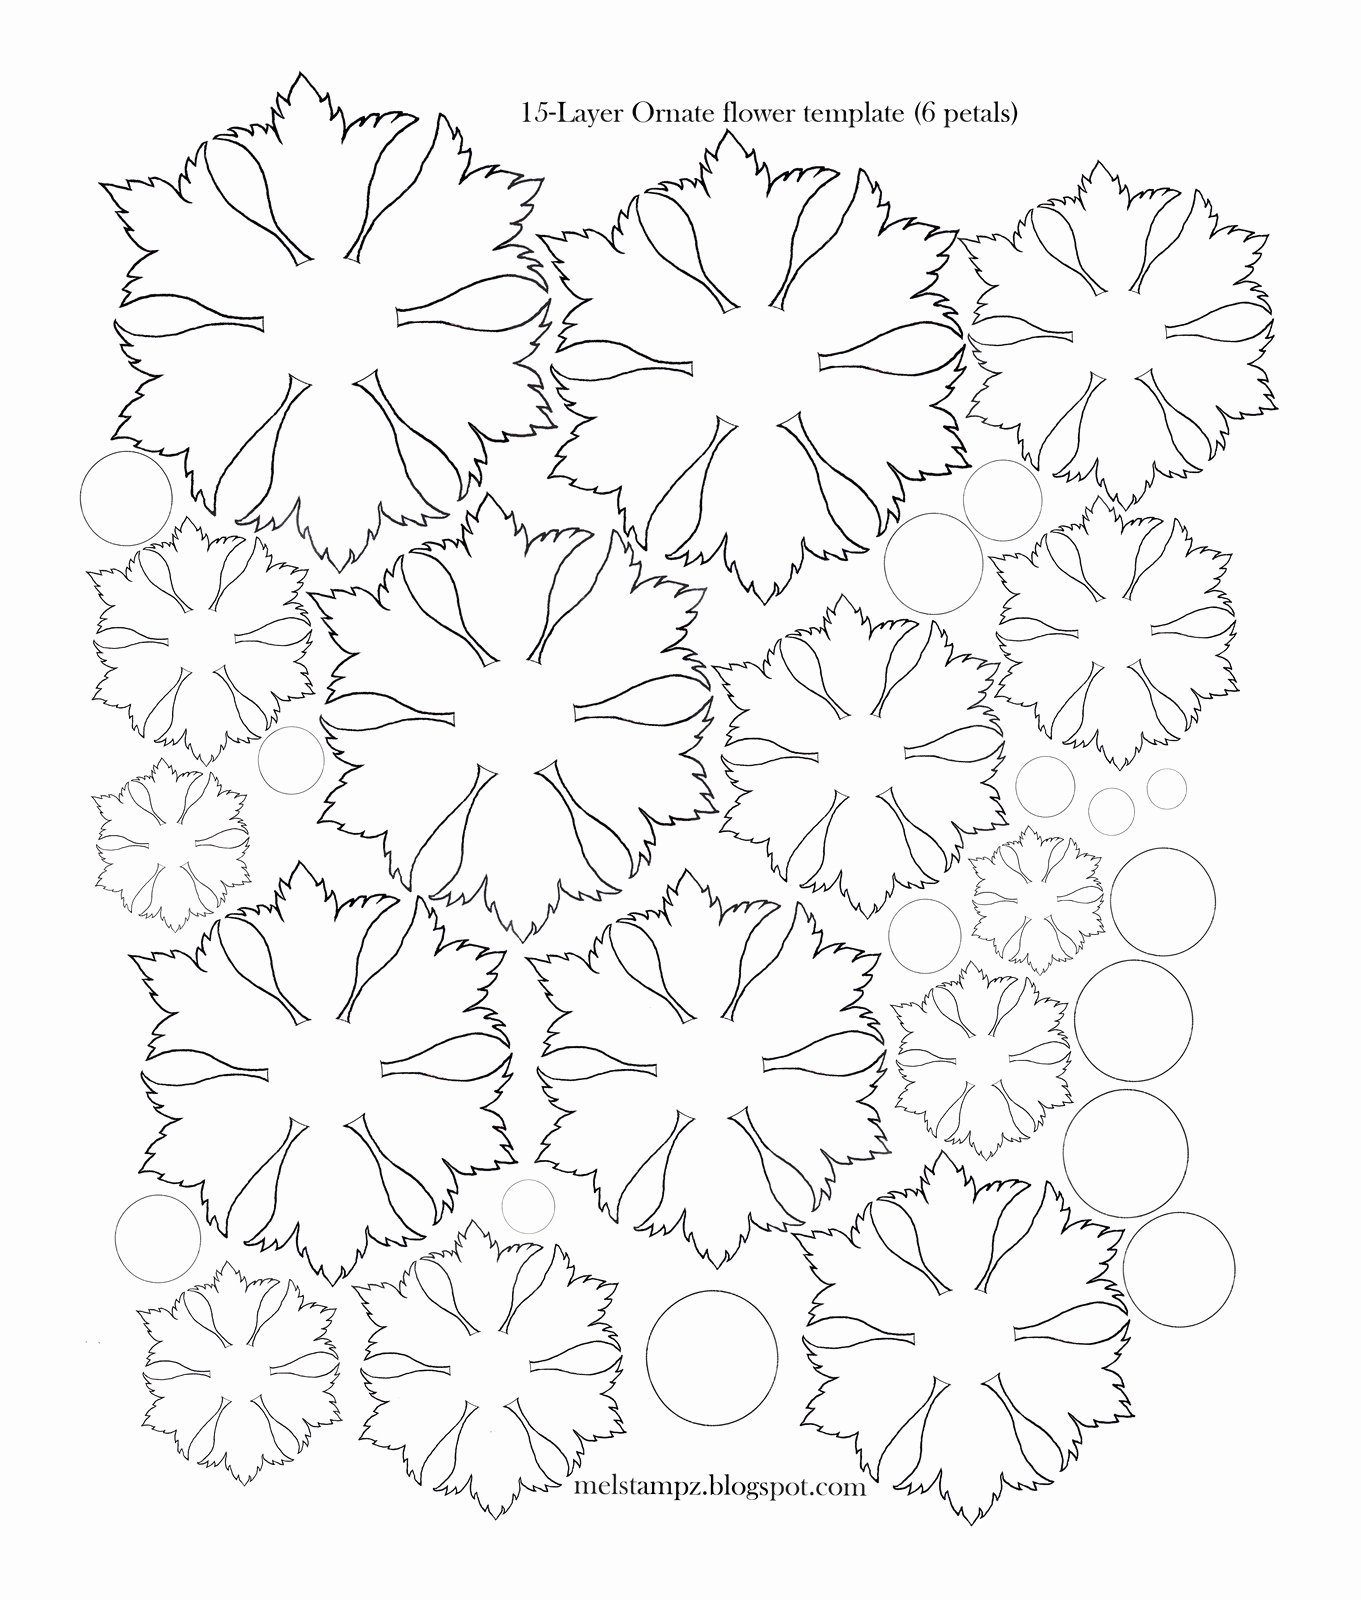 3d Paper Flower Template Luxury Mel Stampz 6 Petal ornate Flower Template